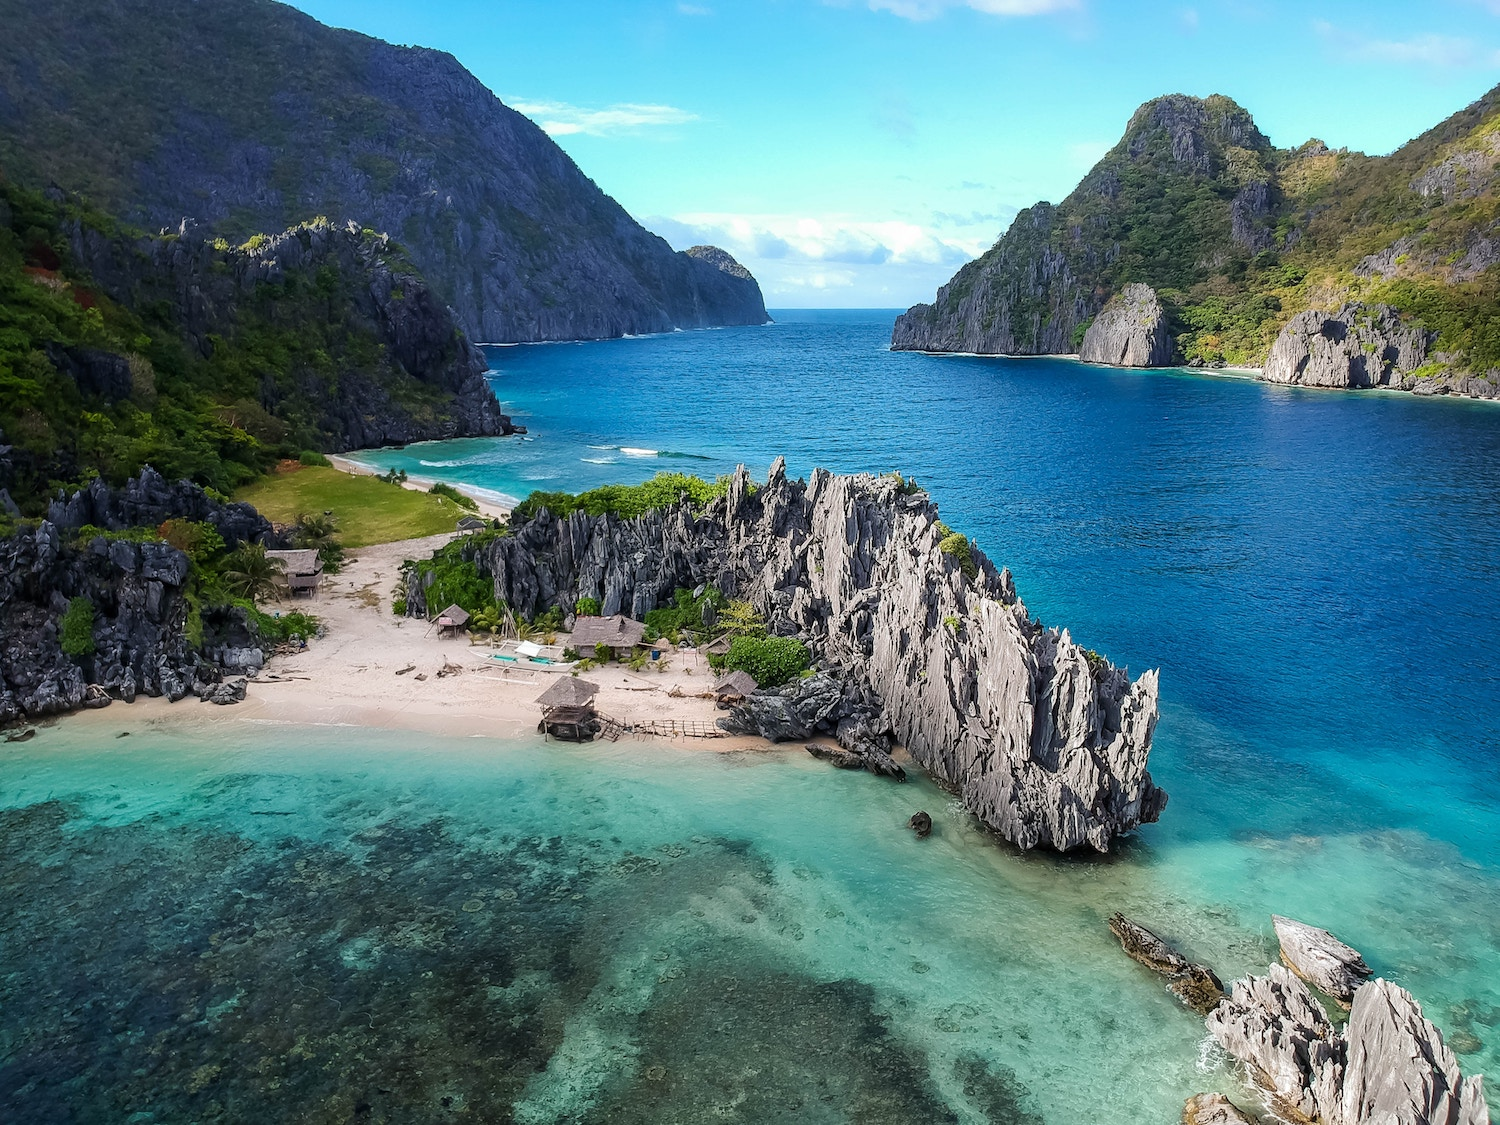 El Nido Palawan Philippines | Warm Weather Destinations to Escape the Winter Cold